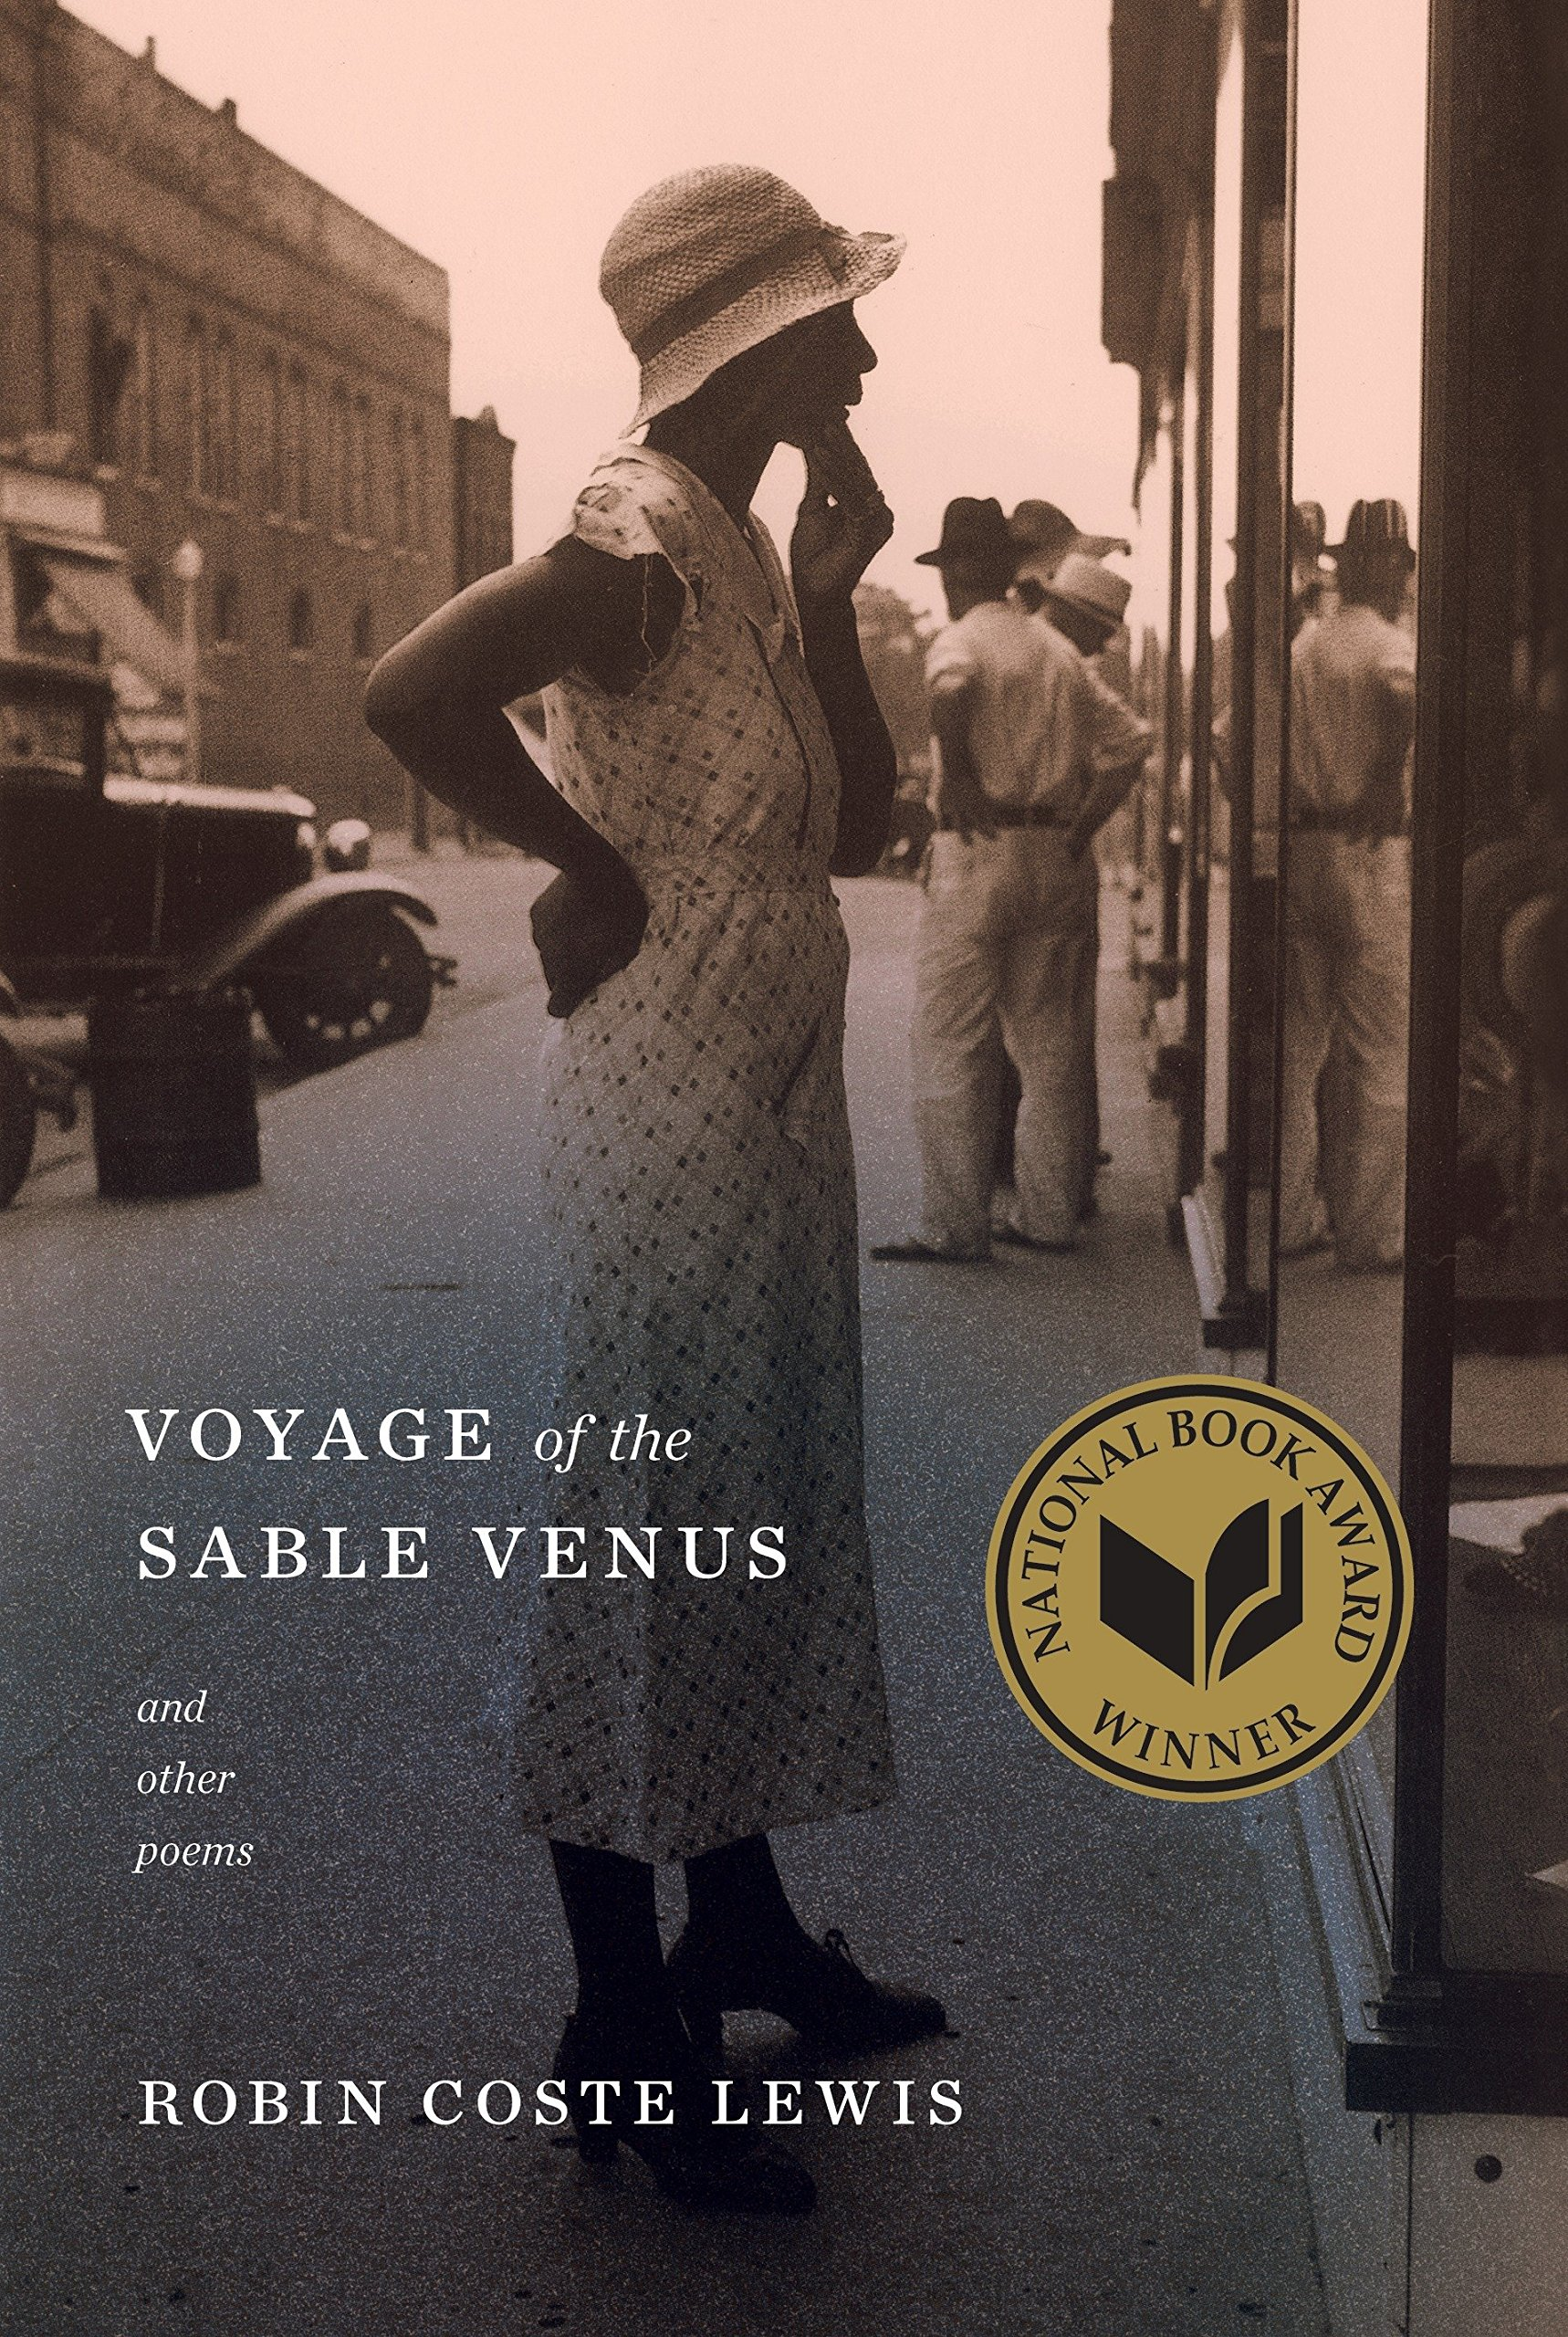 Voyage Of The Sable Venus: Amazon.co.uk: Lewis, Robin Coste: 9781101875438:  Books